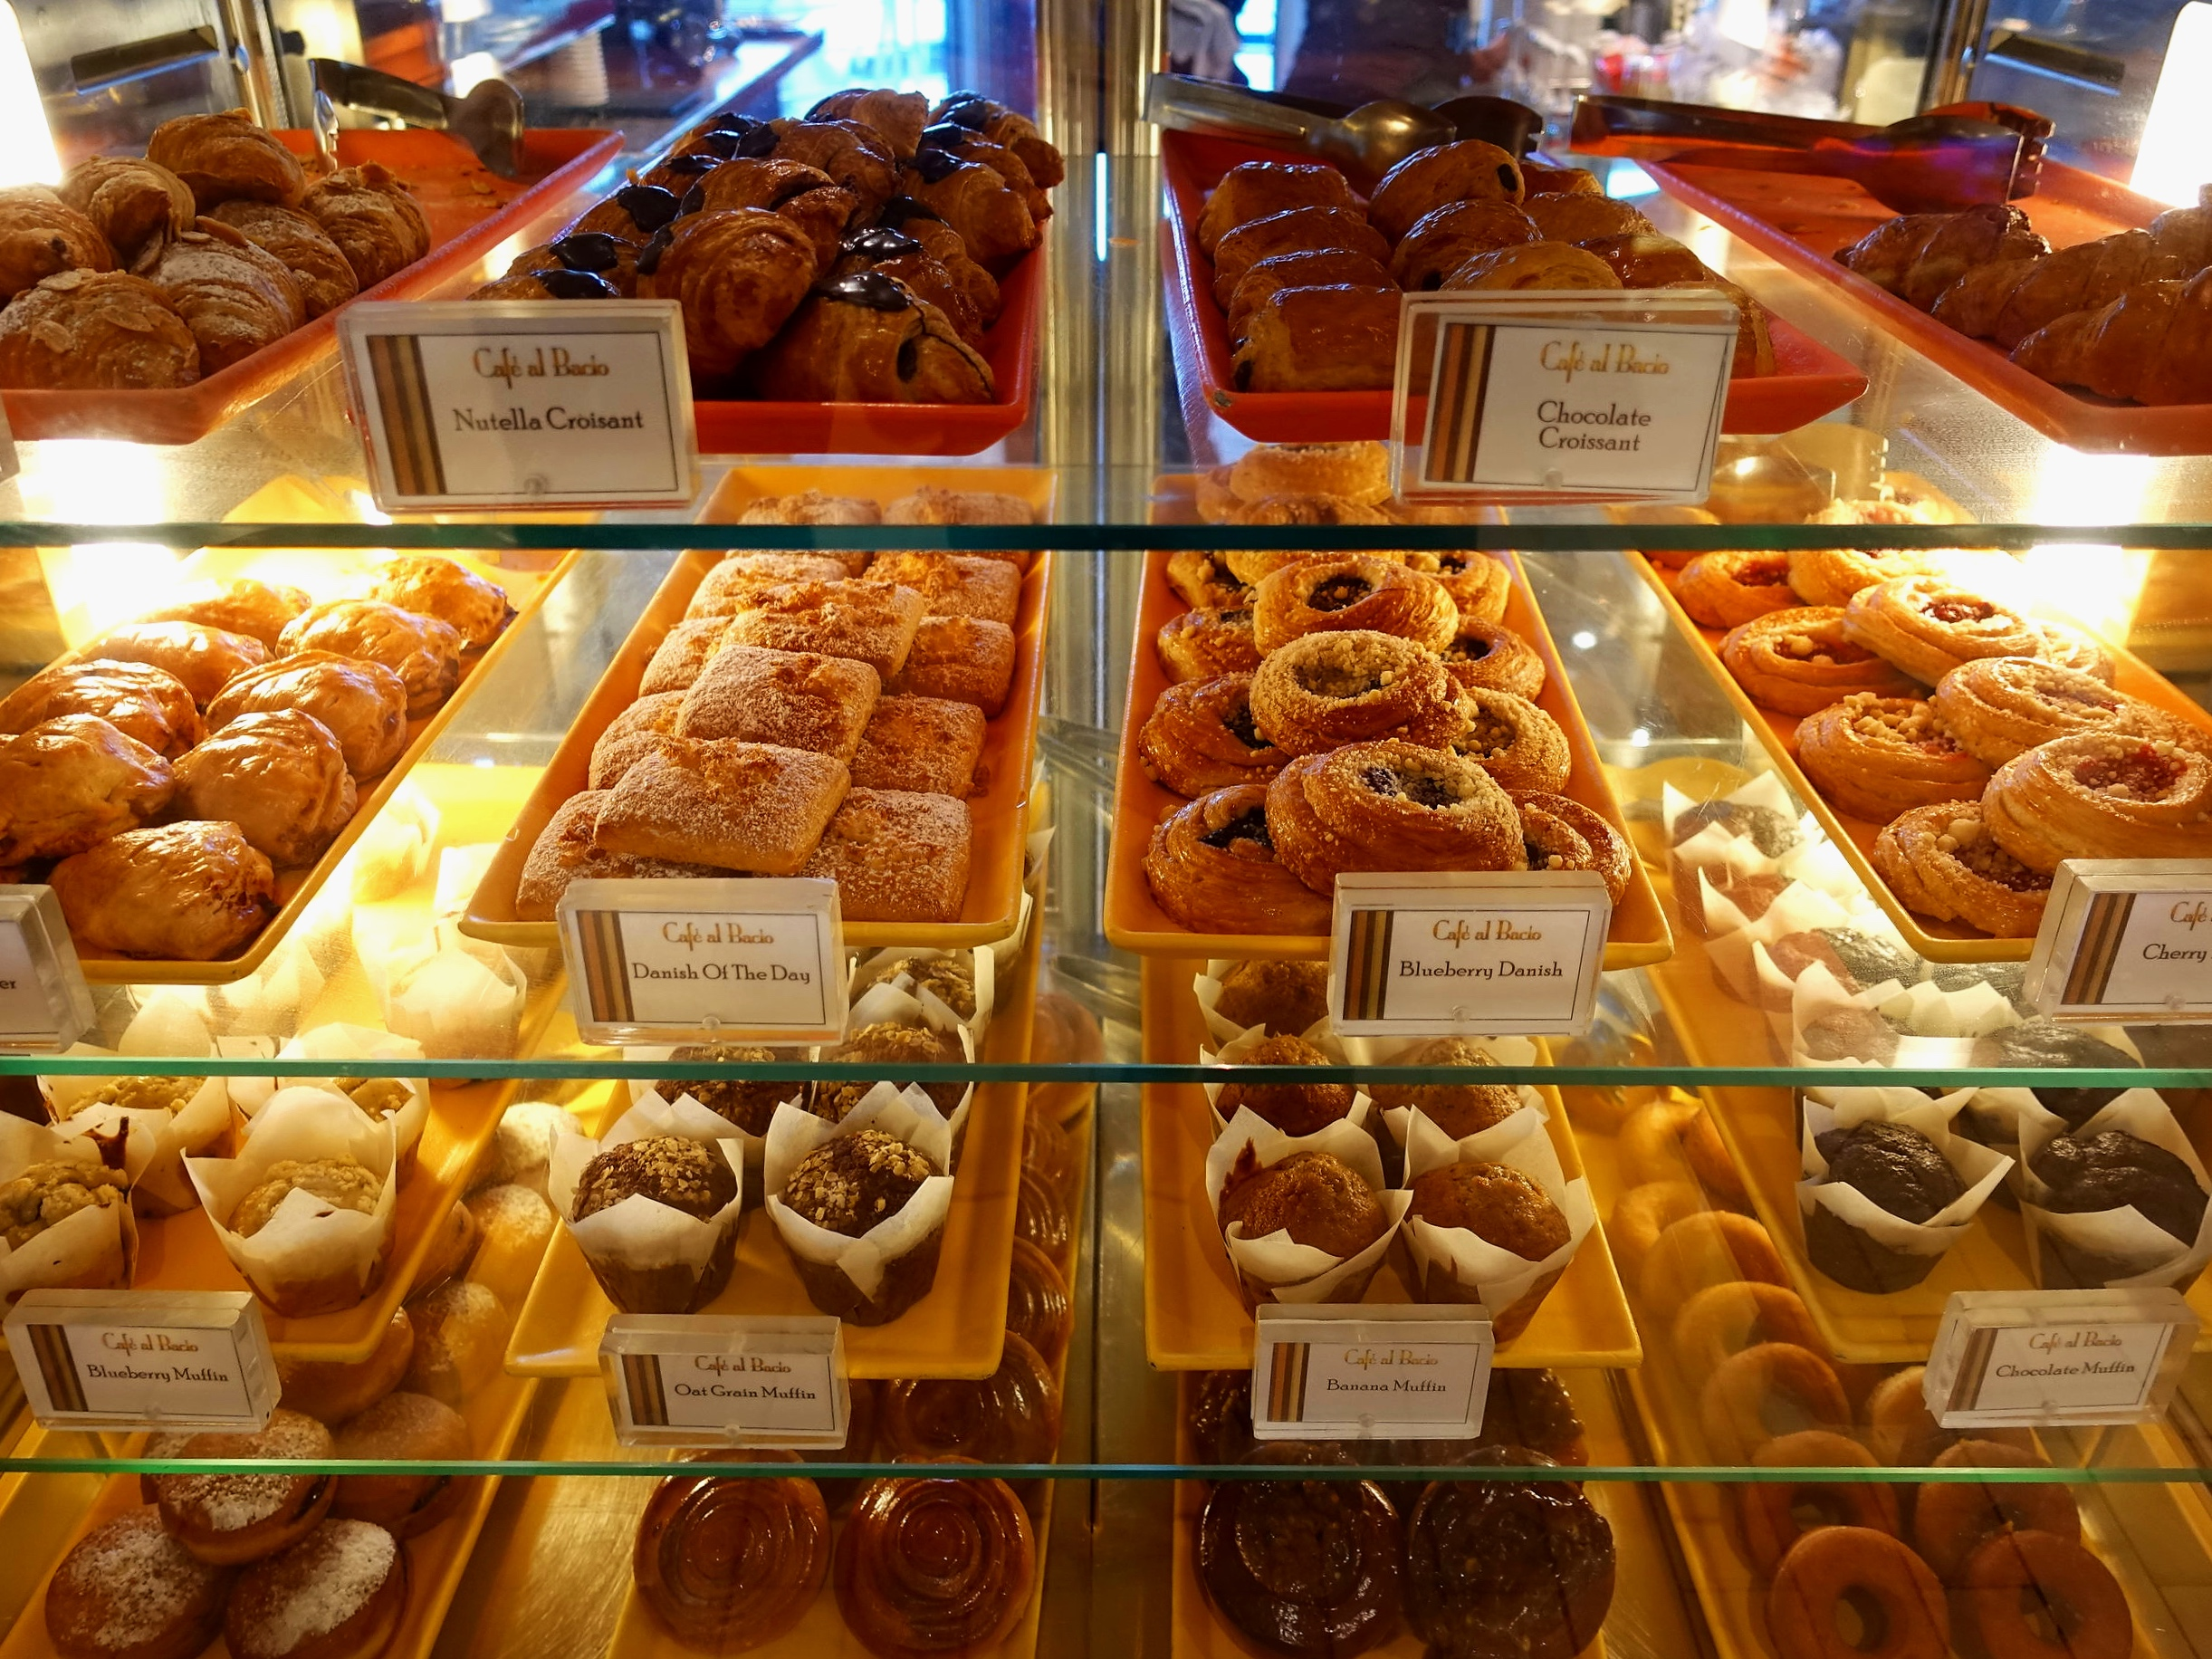 Yummy cakes and pastries